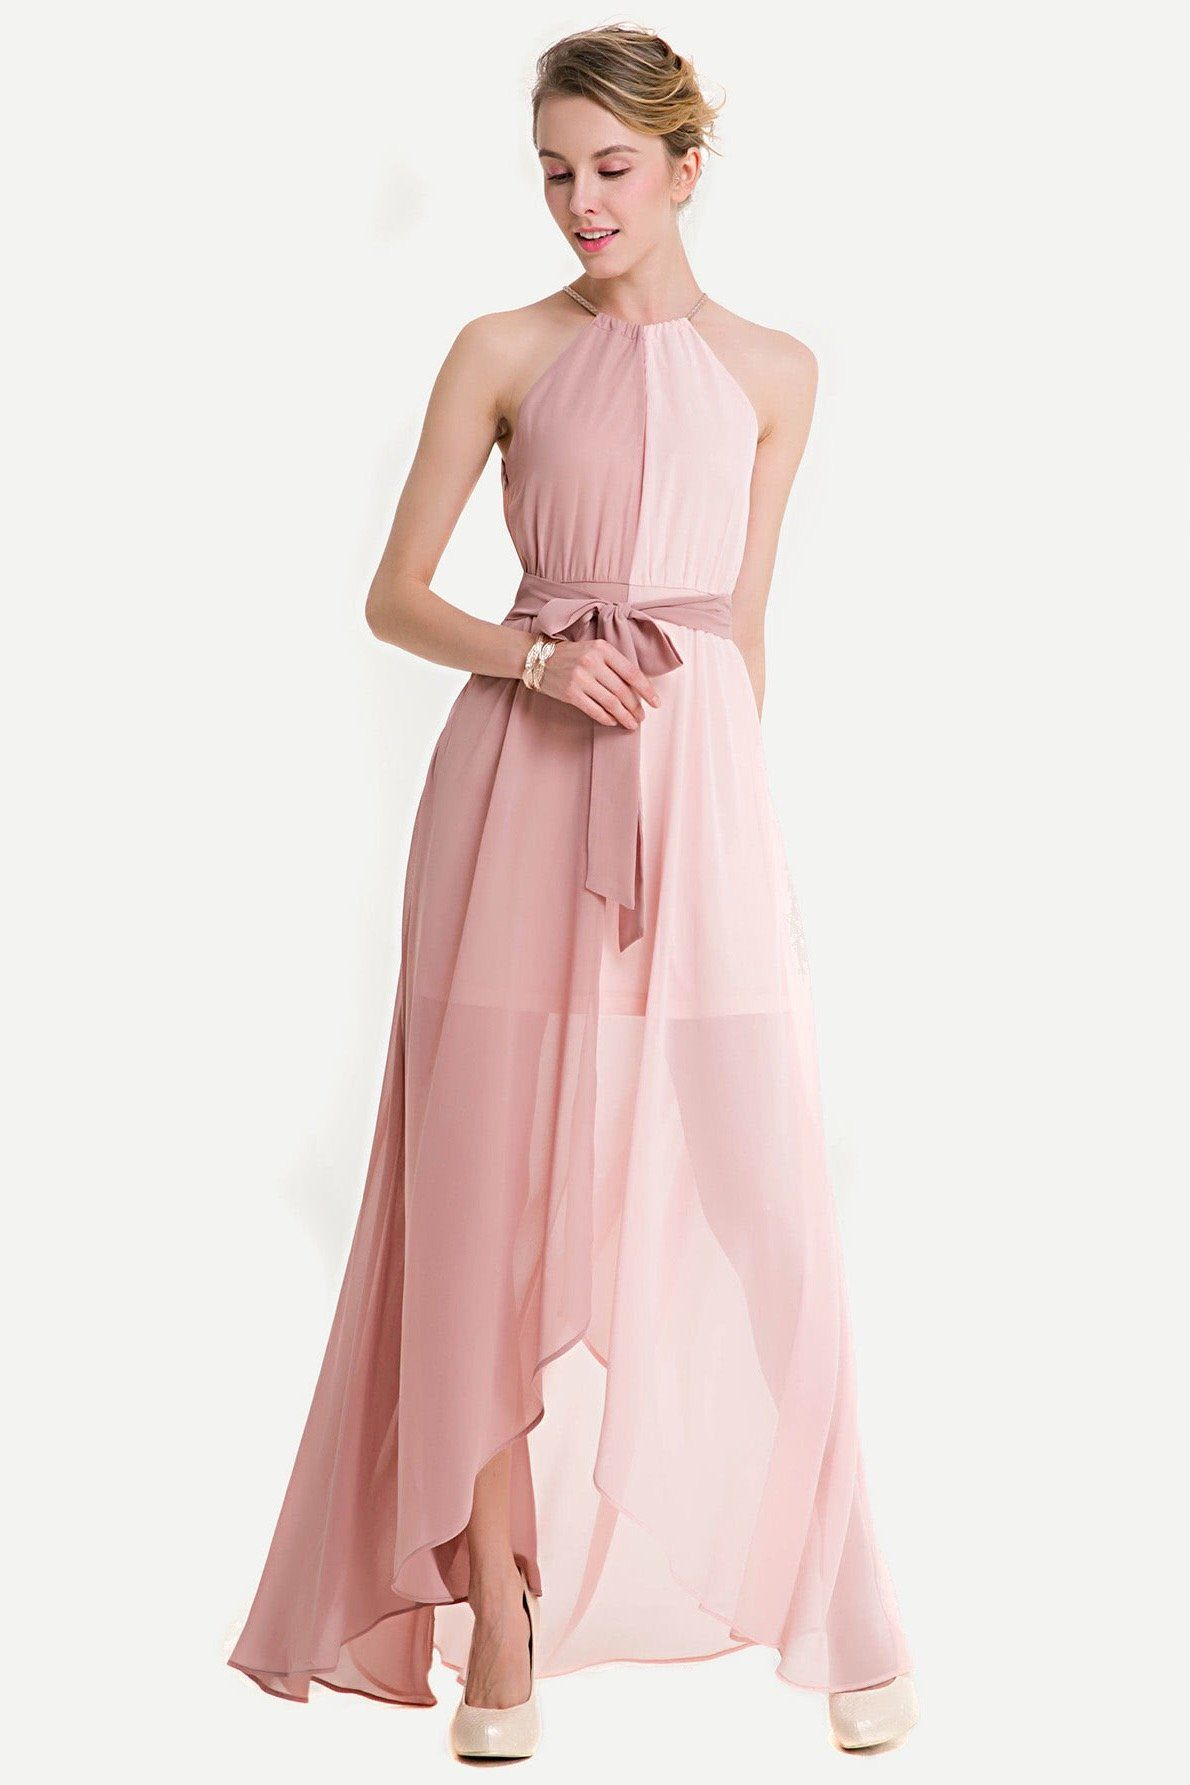 Pink Two Toned Halter Dip Hem Chiffon Maxi Dress Material: Chiffon ...